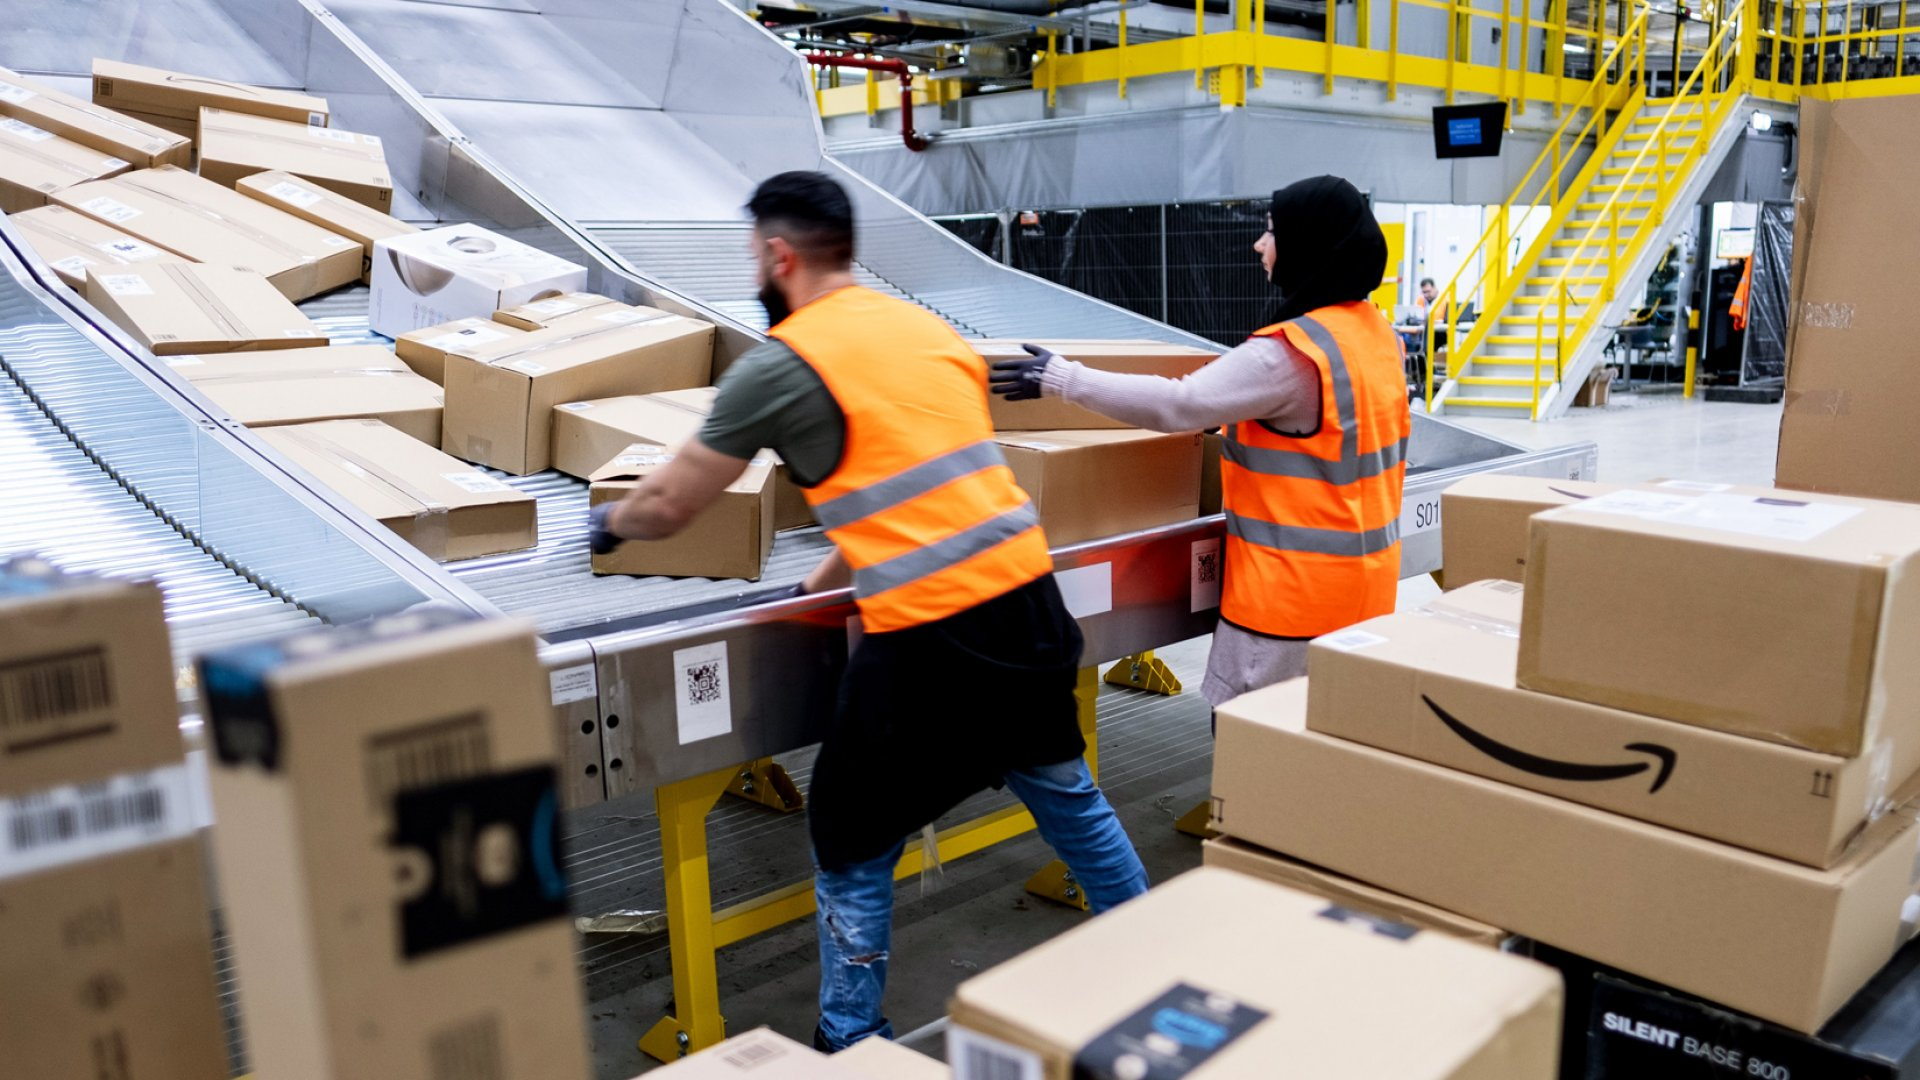 Amazon Is Investing $700 Million in Its Employees. Here's How You Can Follow Its Lead